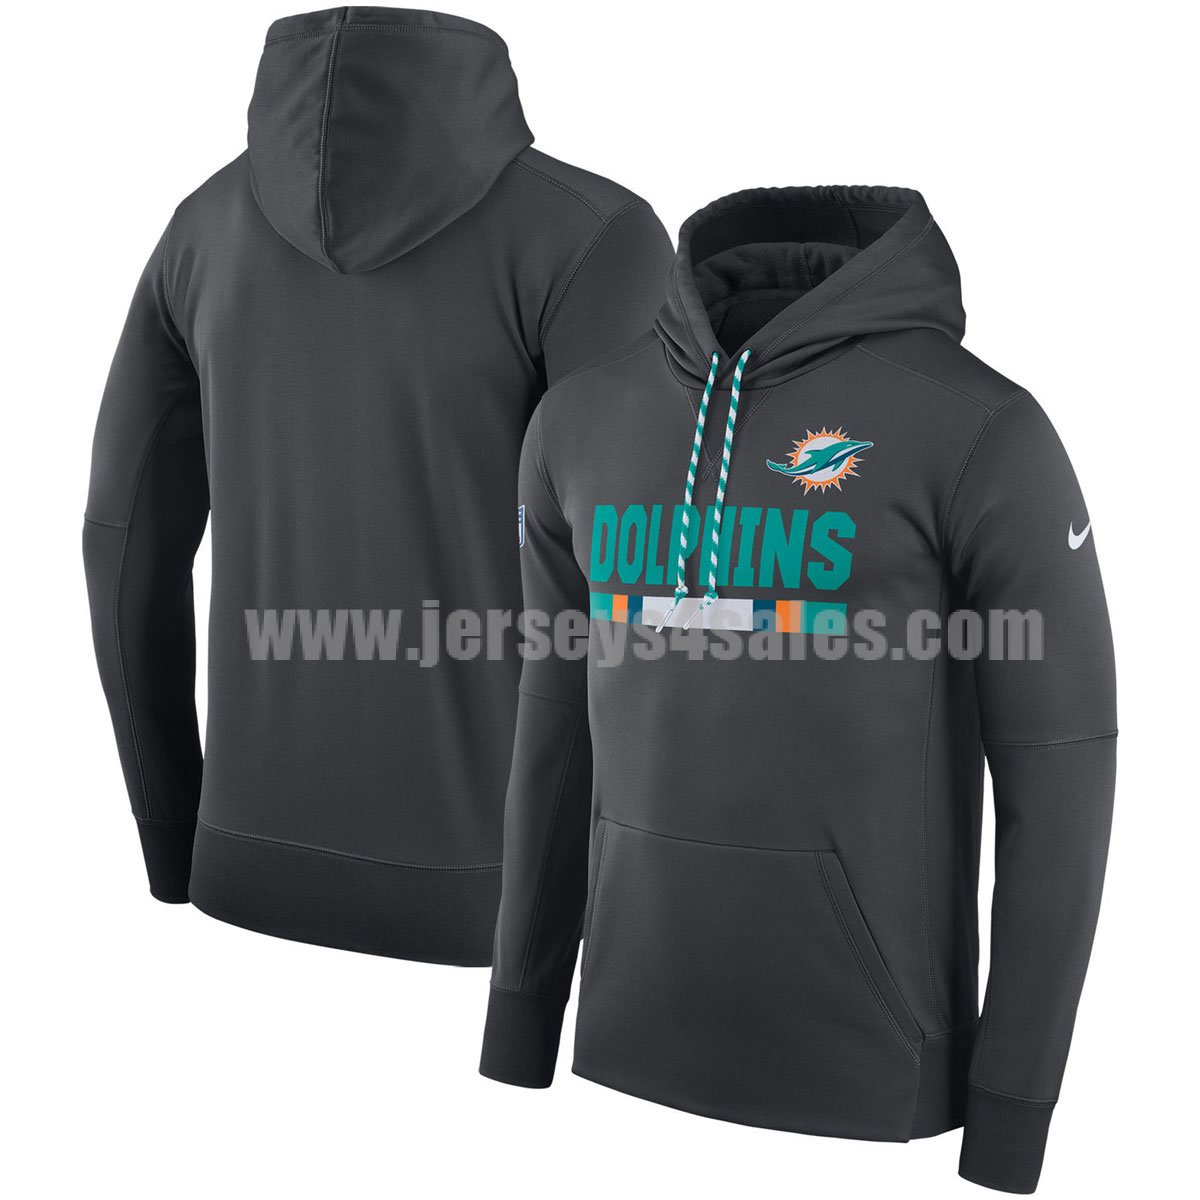 Men's Miami Dolphins Charcoal Nike Sideline Team Name Performance Pullover NFL Hoodie